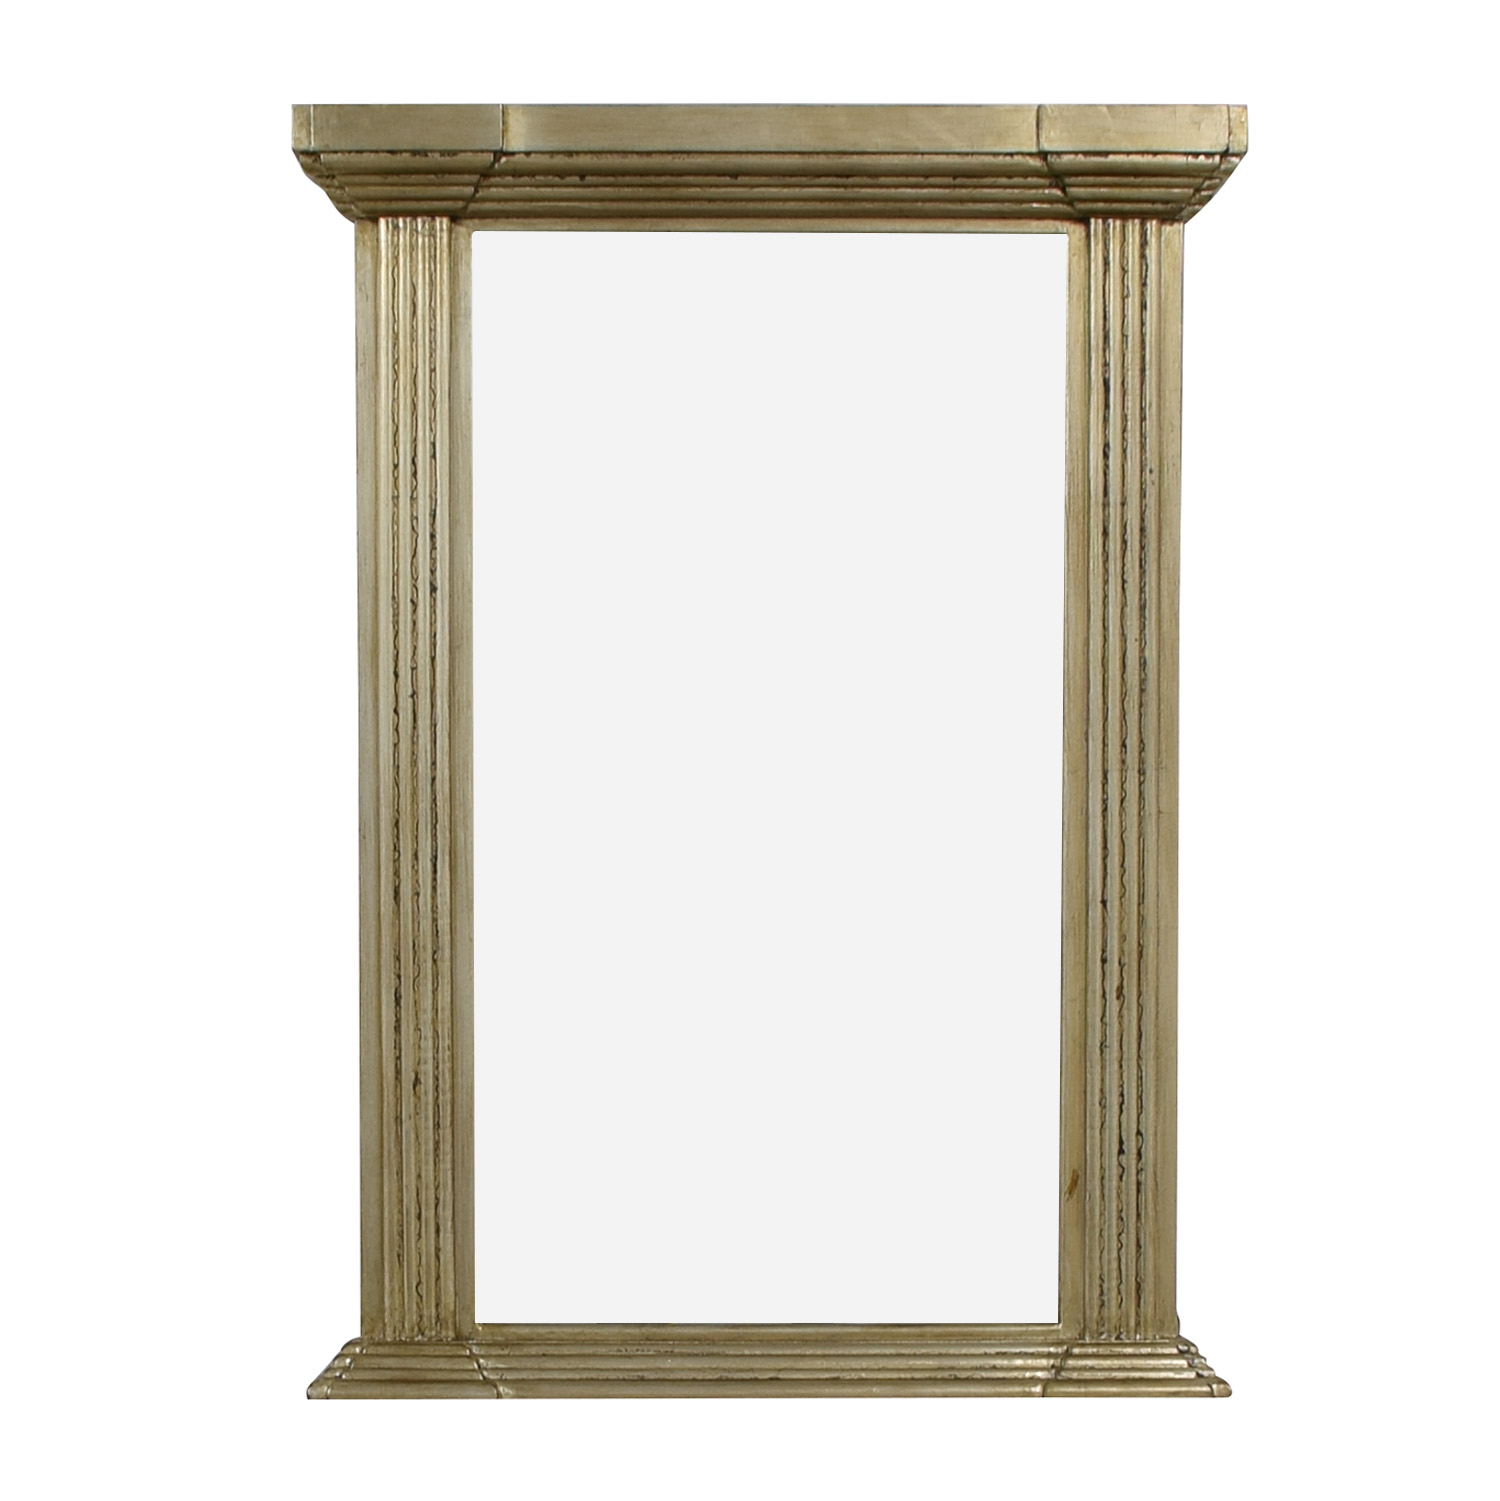 buy Carolyn Kinder Carolyn Kinder Antiqued Gold Pillar Mirror online